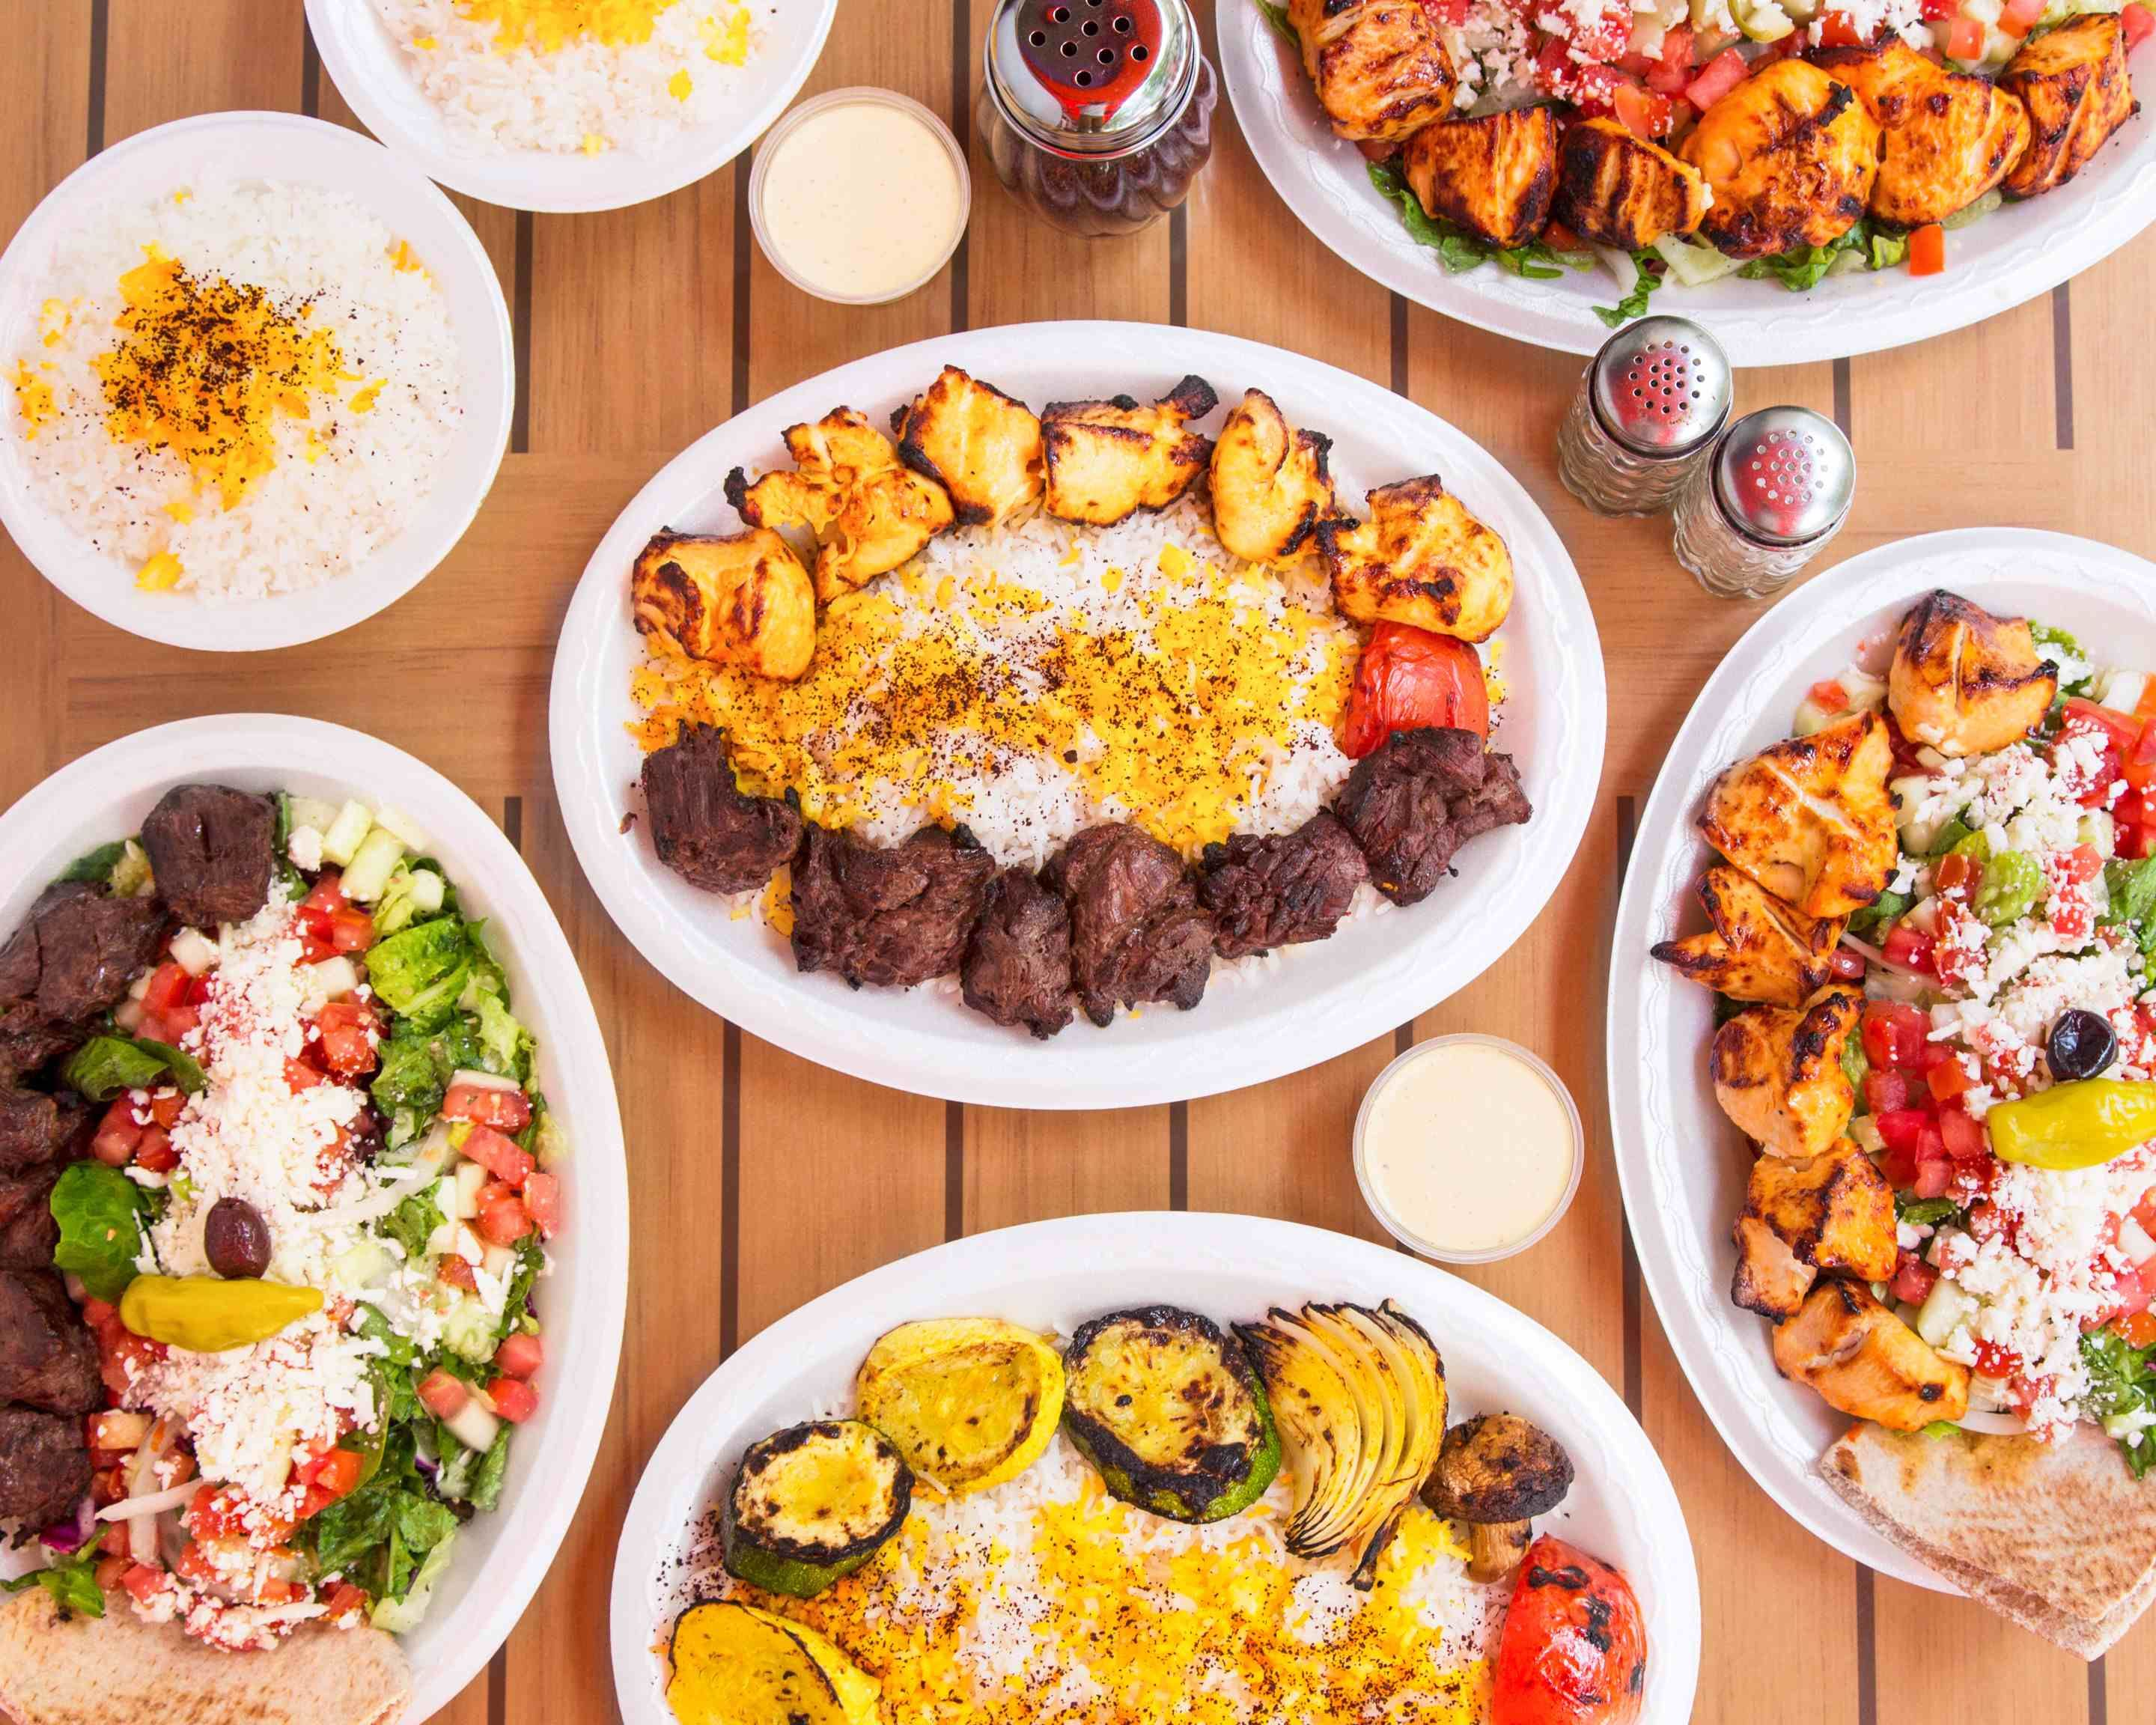 Rice Mediterranean Kitchen South Miami Delivery South Miami